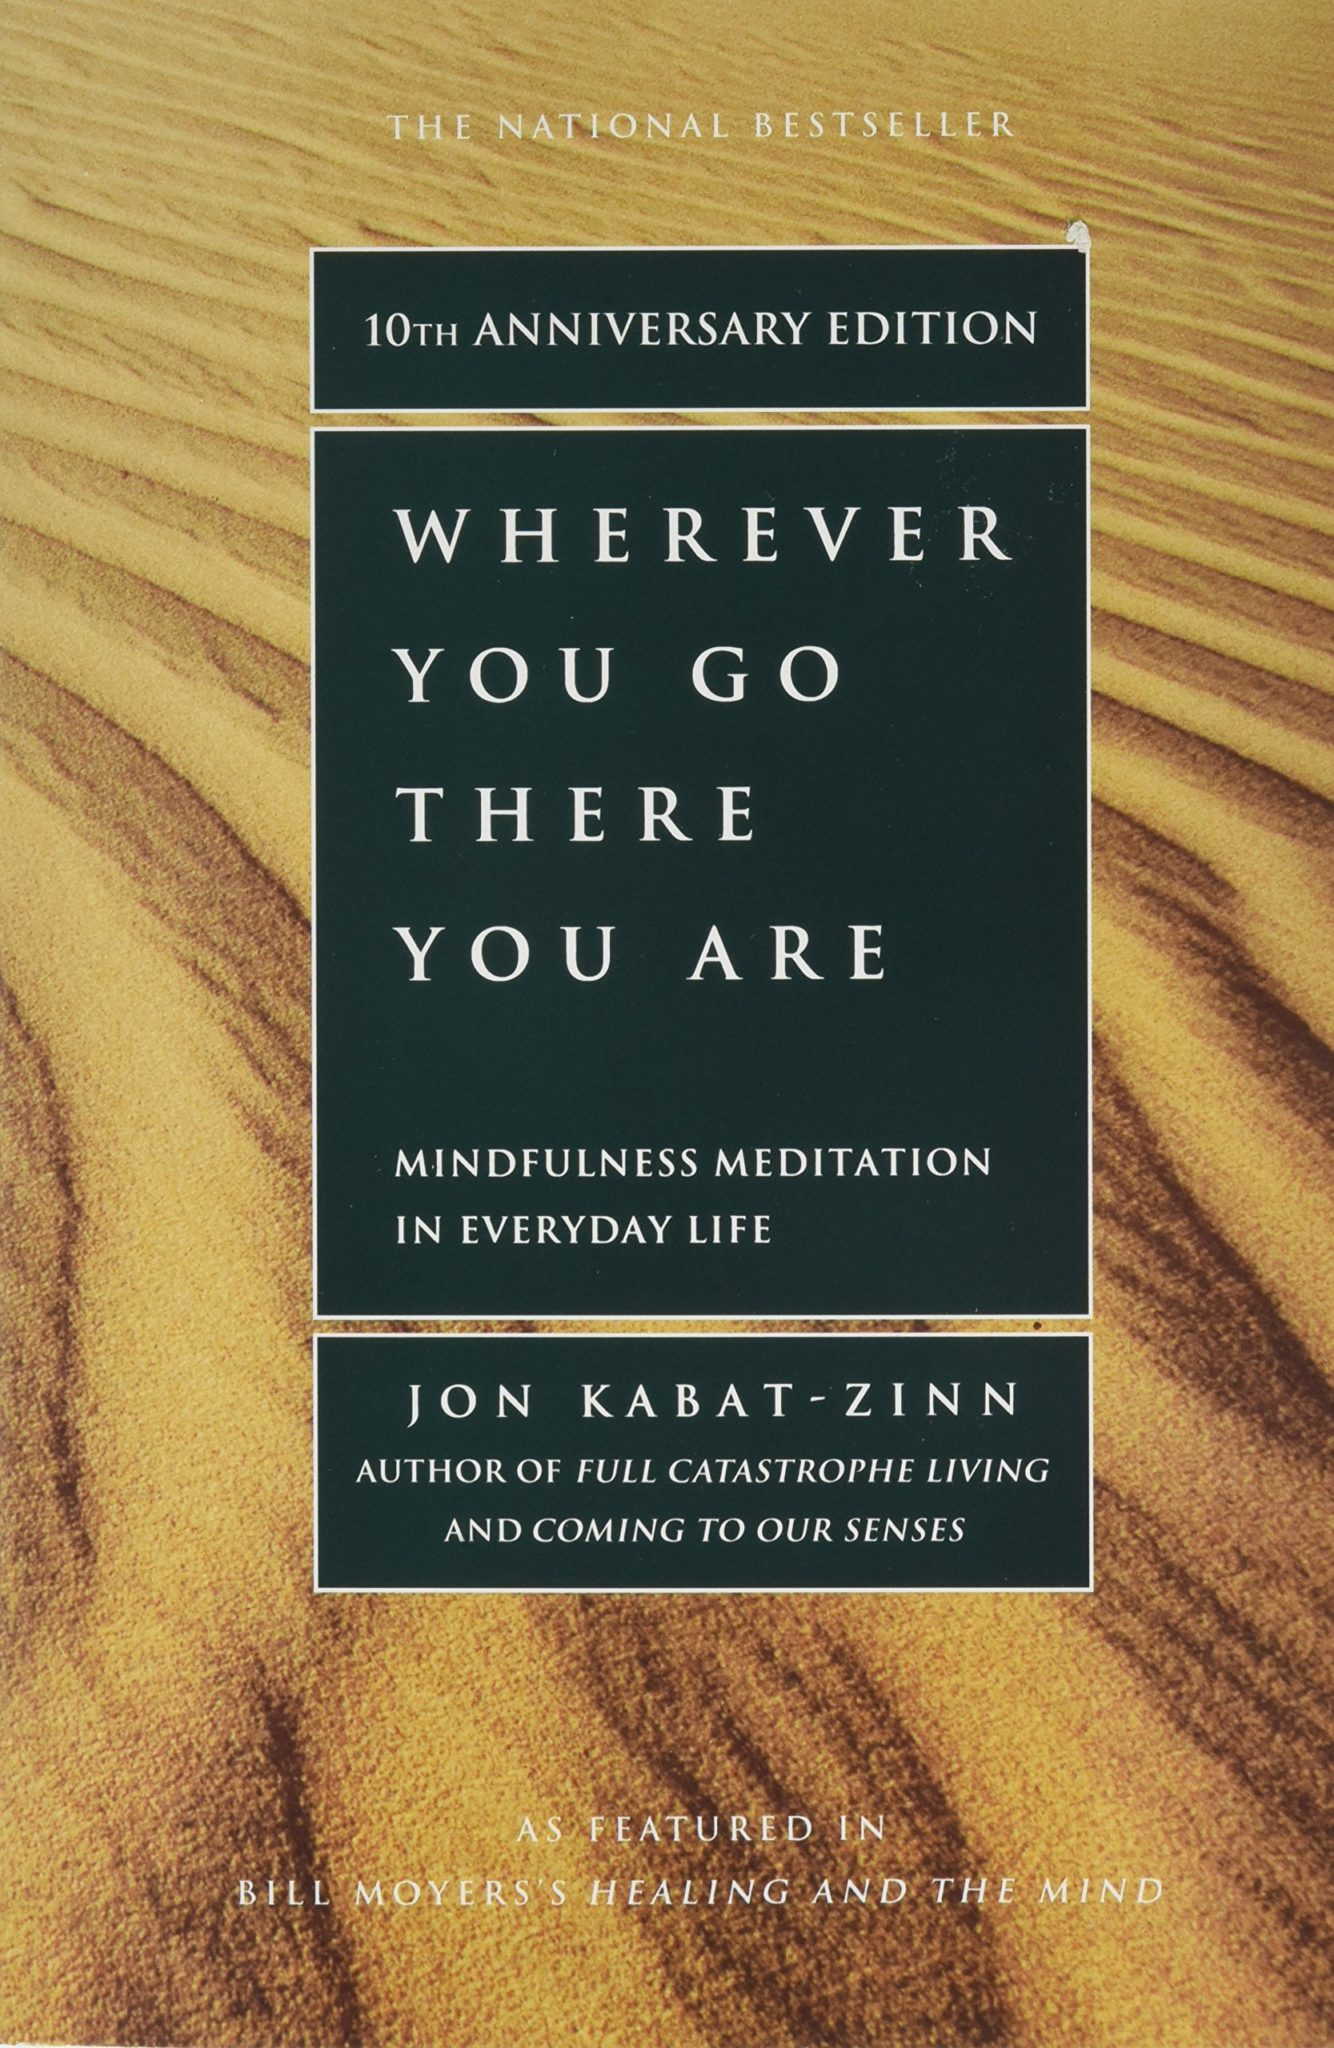 Wherever-You-Go-there-You-Are-meditation-book-Jon-Kabat-Zinn